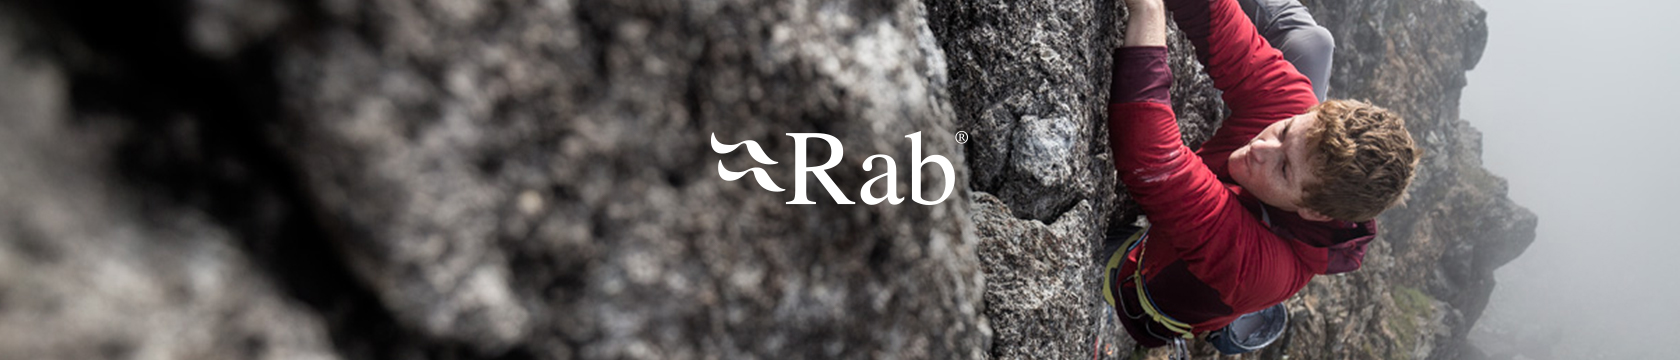 Man climbing wearing Rab gear.